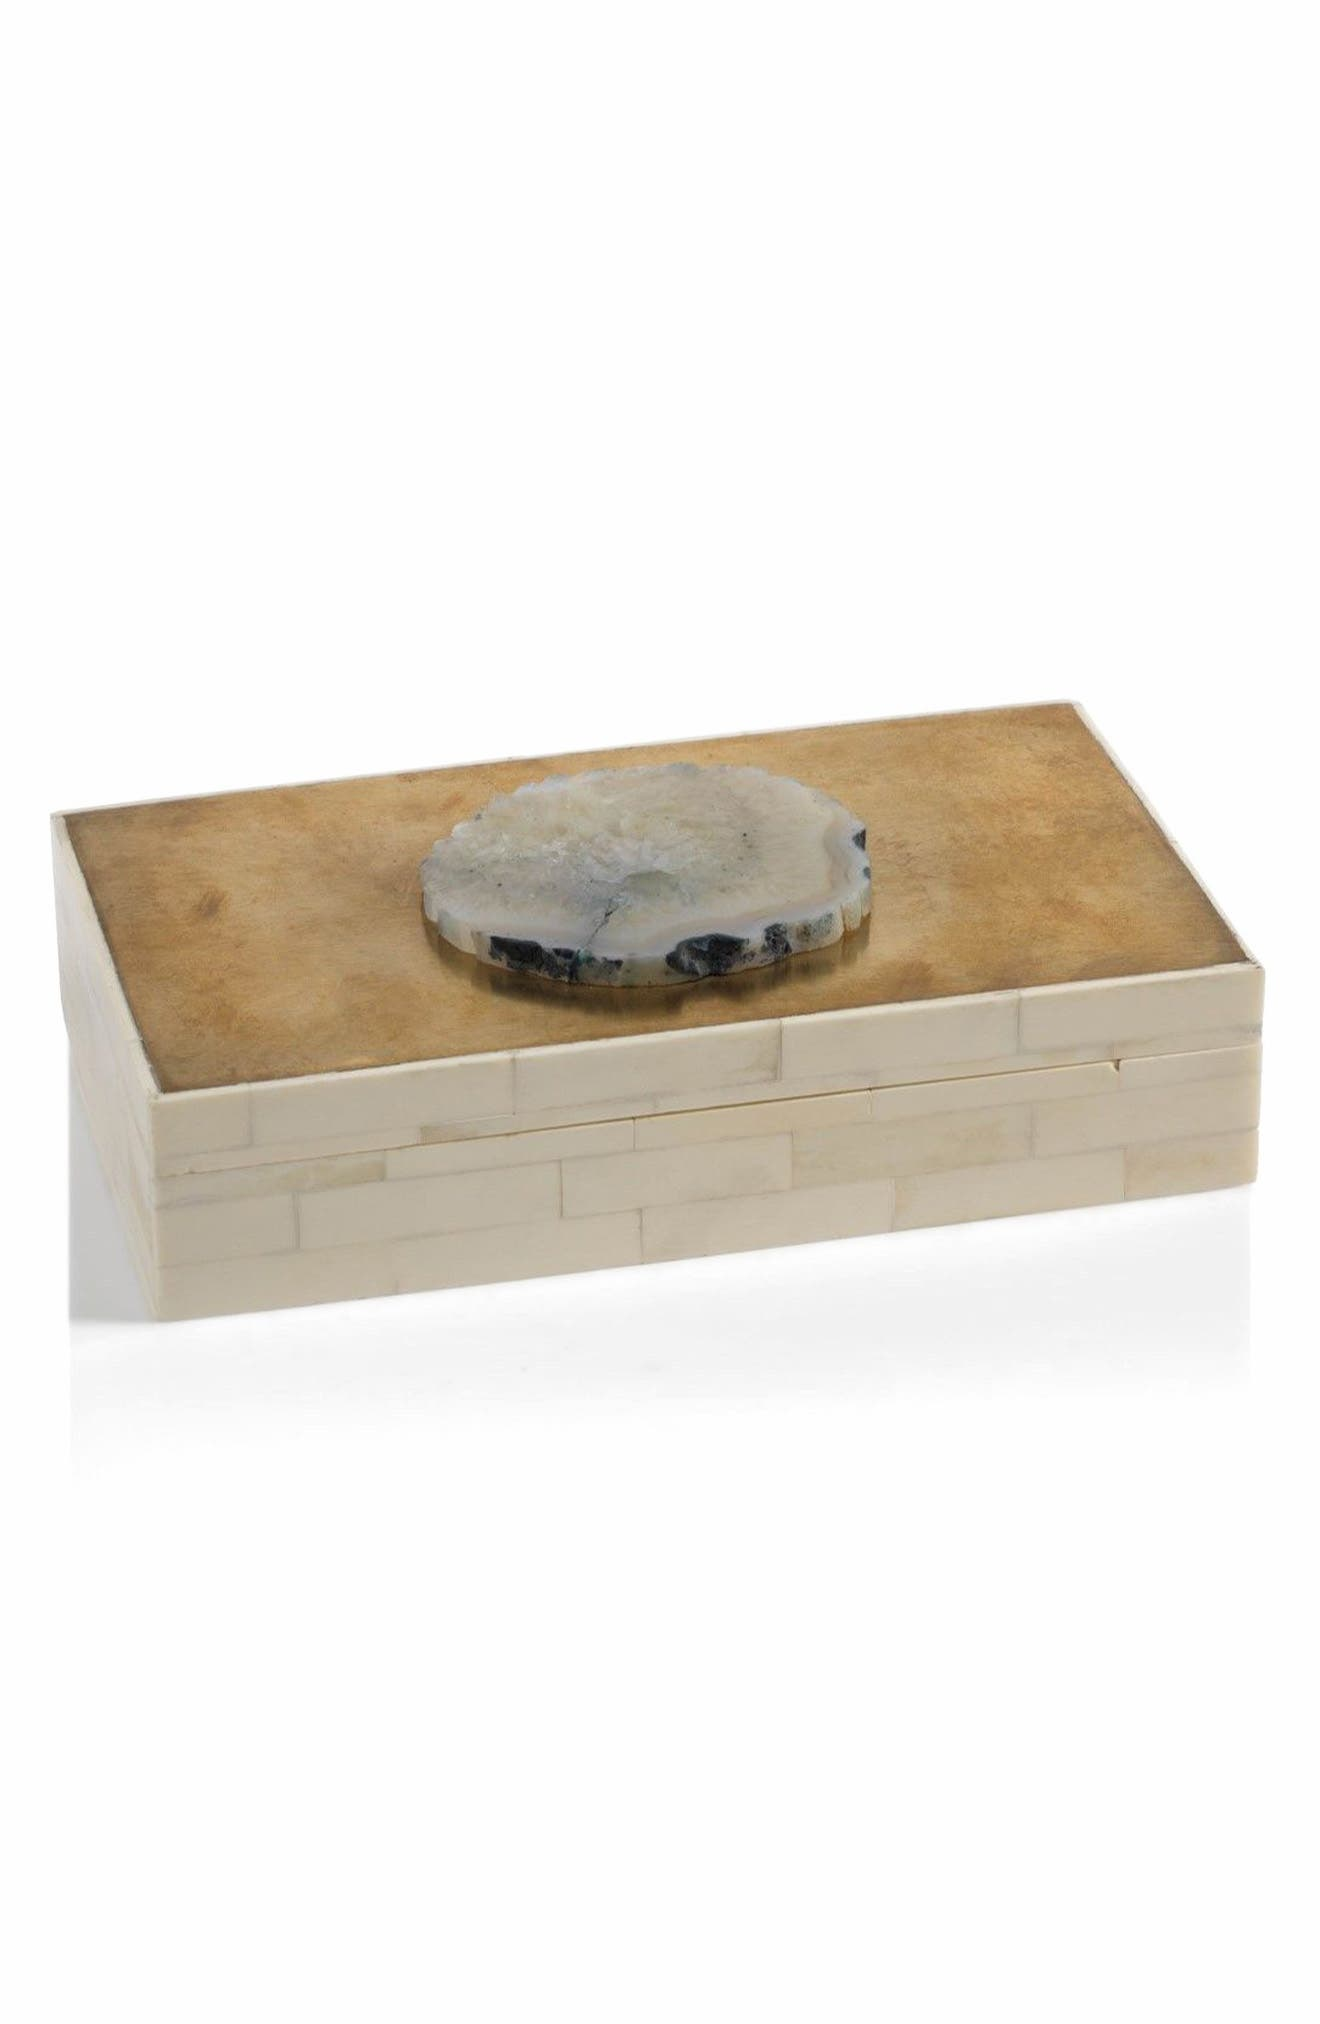 Bali Bone & Agate Jewelry Box,                         Main,                         color, Off-White